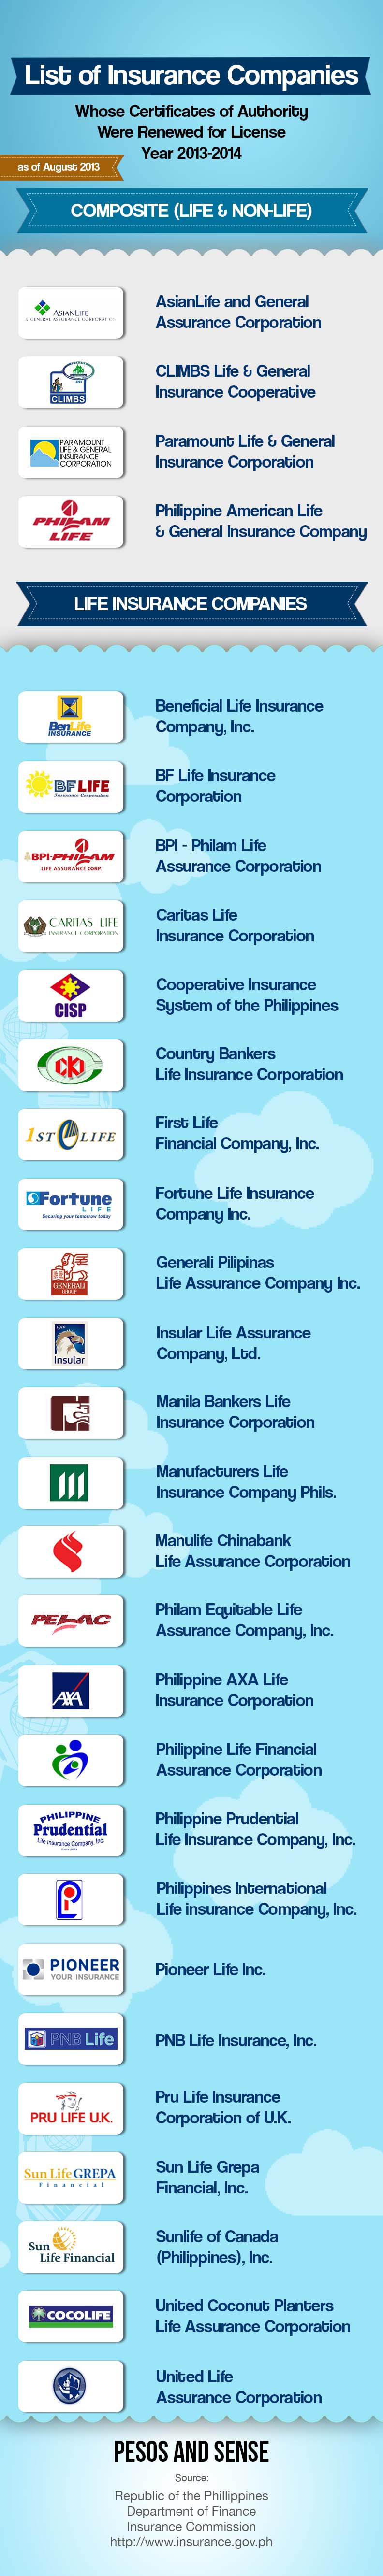 List Of Insurance Companies Insurance Company Debt Management